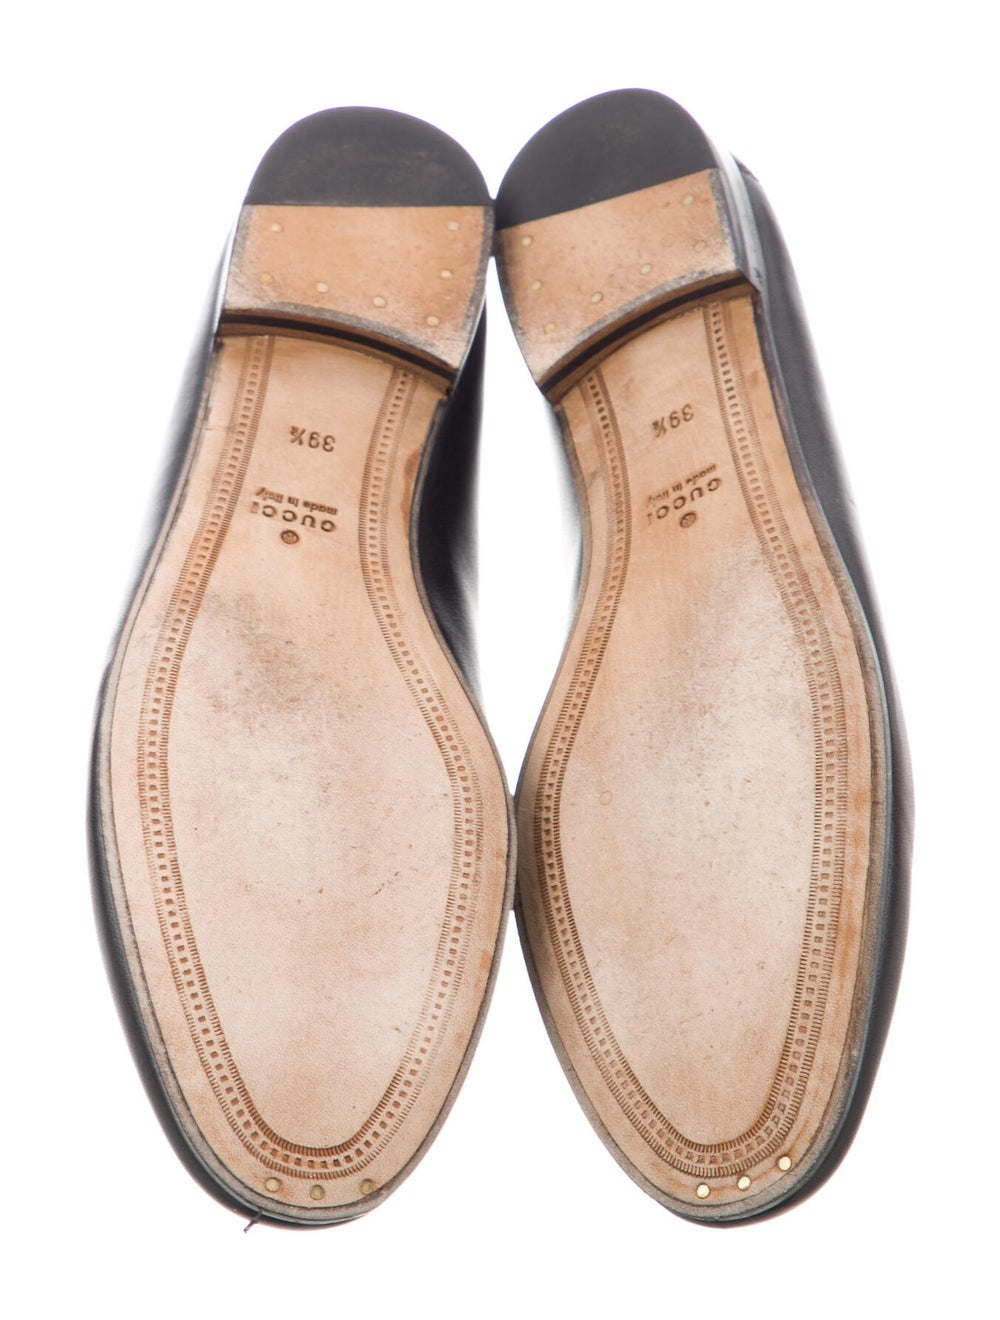 Gucci Horsebit Accent Leather Loafers Black - image 5